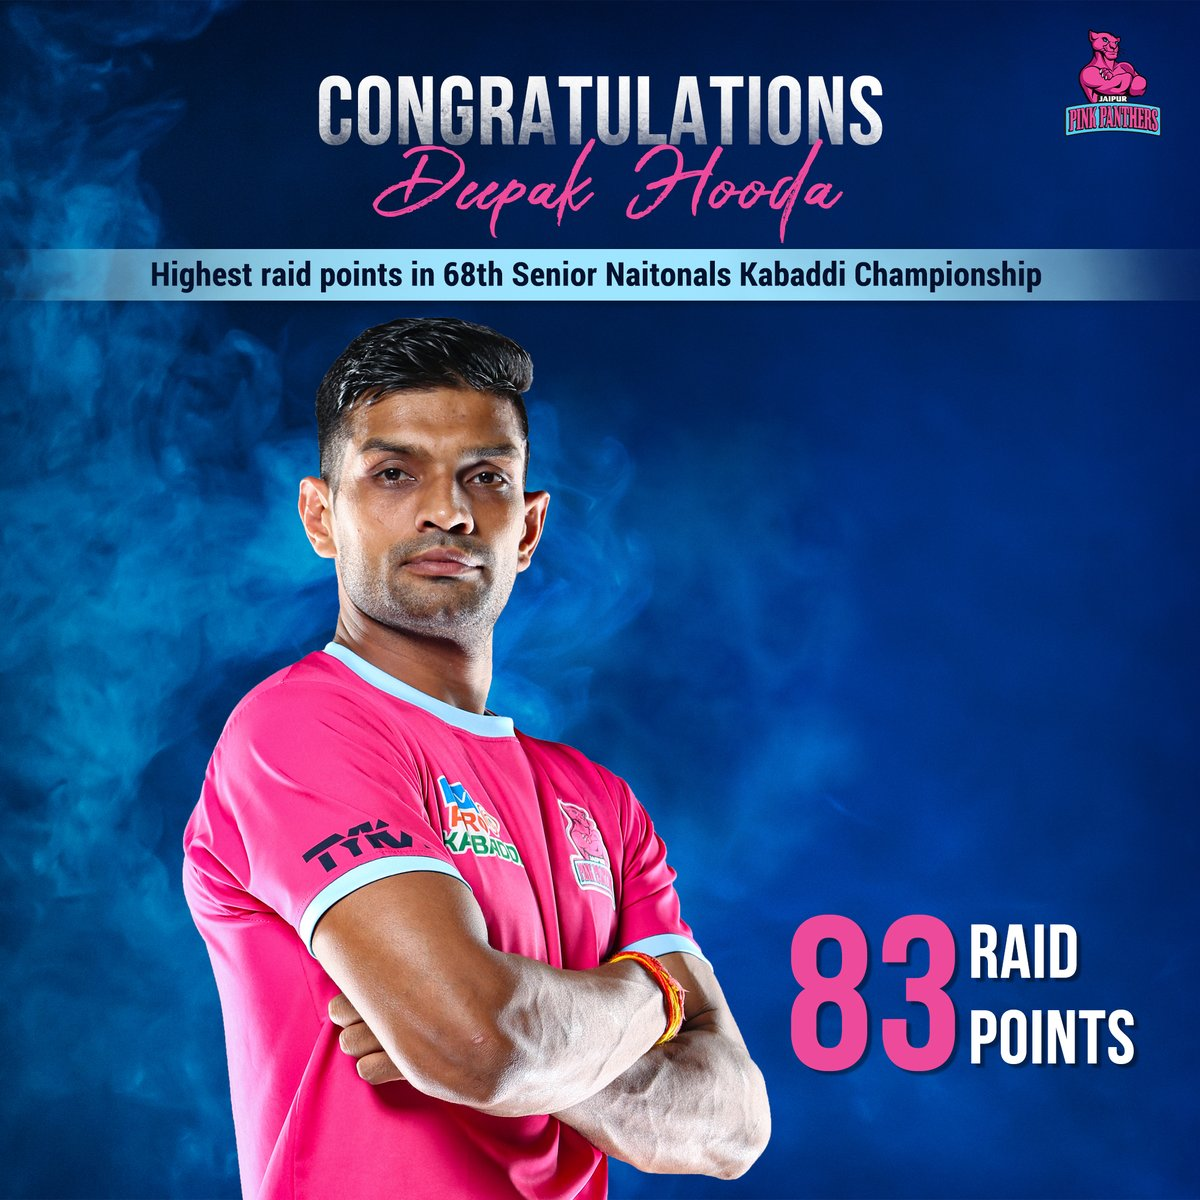 Congratulations @DeepakHooda5555 for topping the Raider's chart with 83 raid points in the 68th Senior Nationals Kabaddi Championship.  #PantherSquad #JaiHanuman #TopCats #JaipurPinkPanthers #JPP #Jaipur #vivoprokabaddi